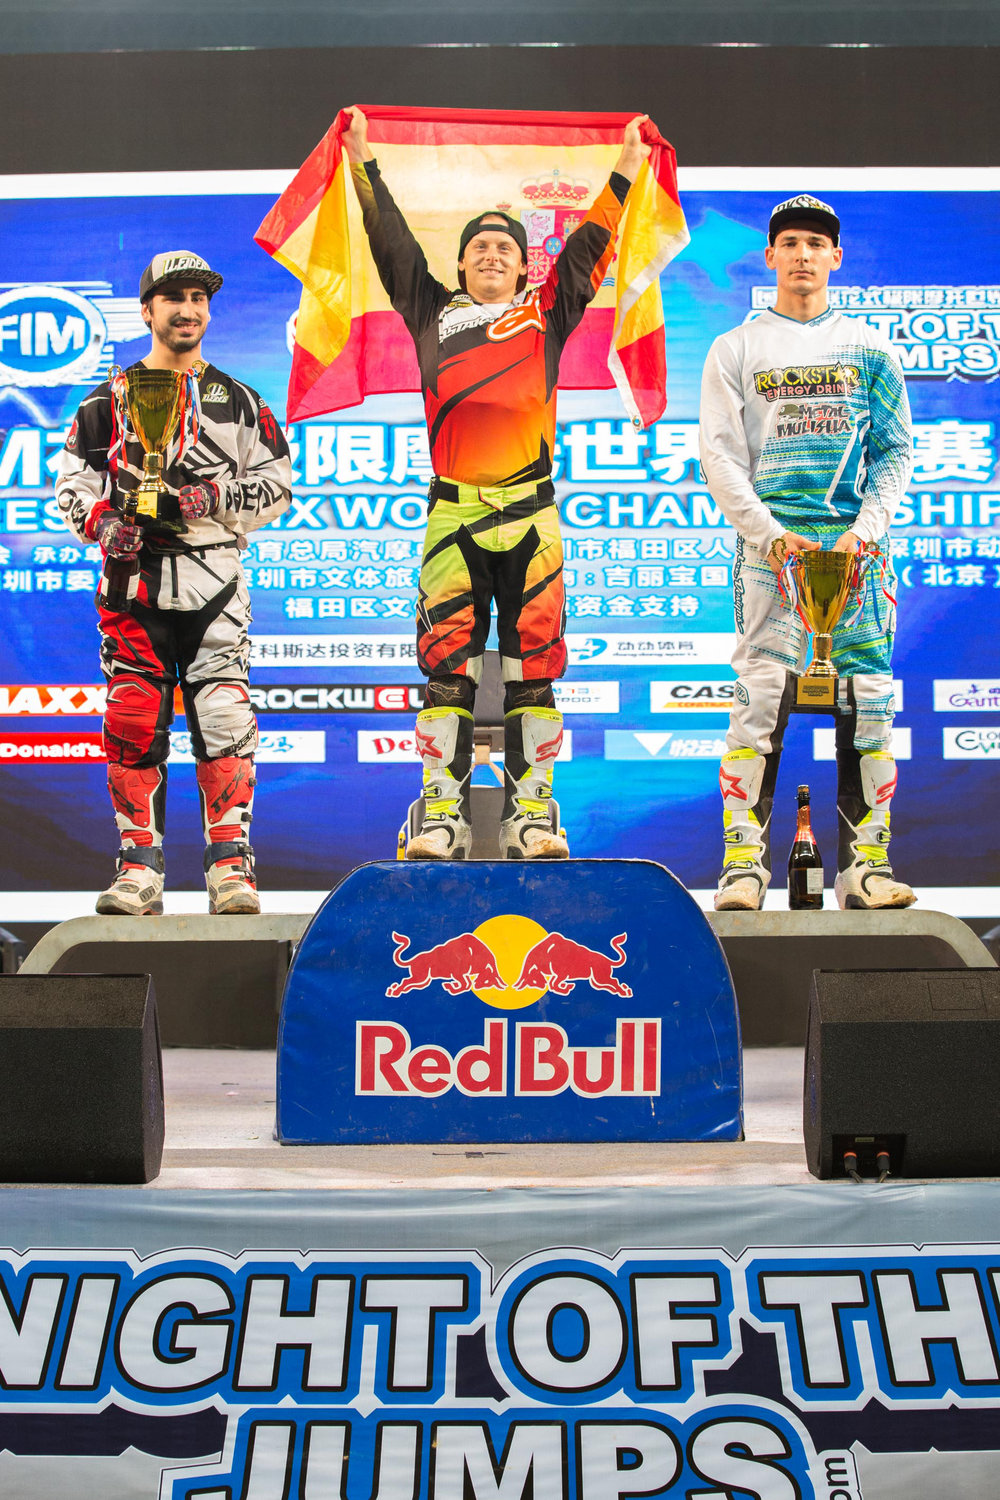 Trophy Ceremony Shenzhen Round 10 FMX World Championship 2016 -6931(c)NIGHToftheJUMPs.jpg